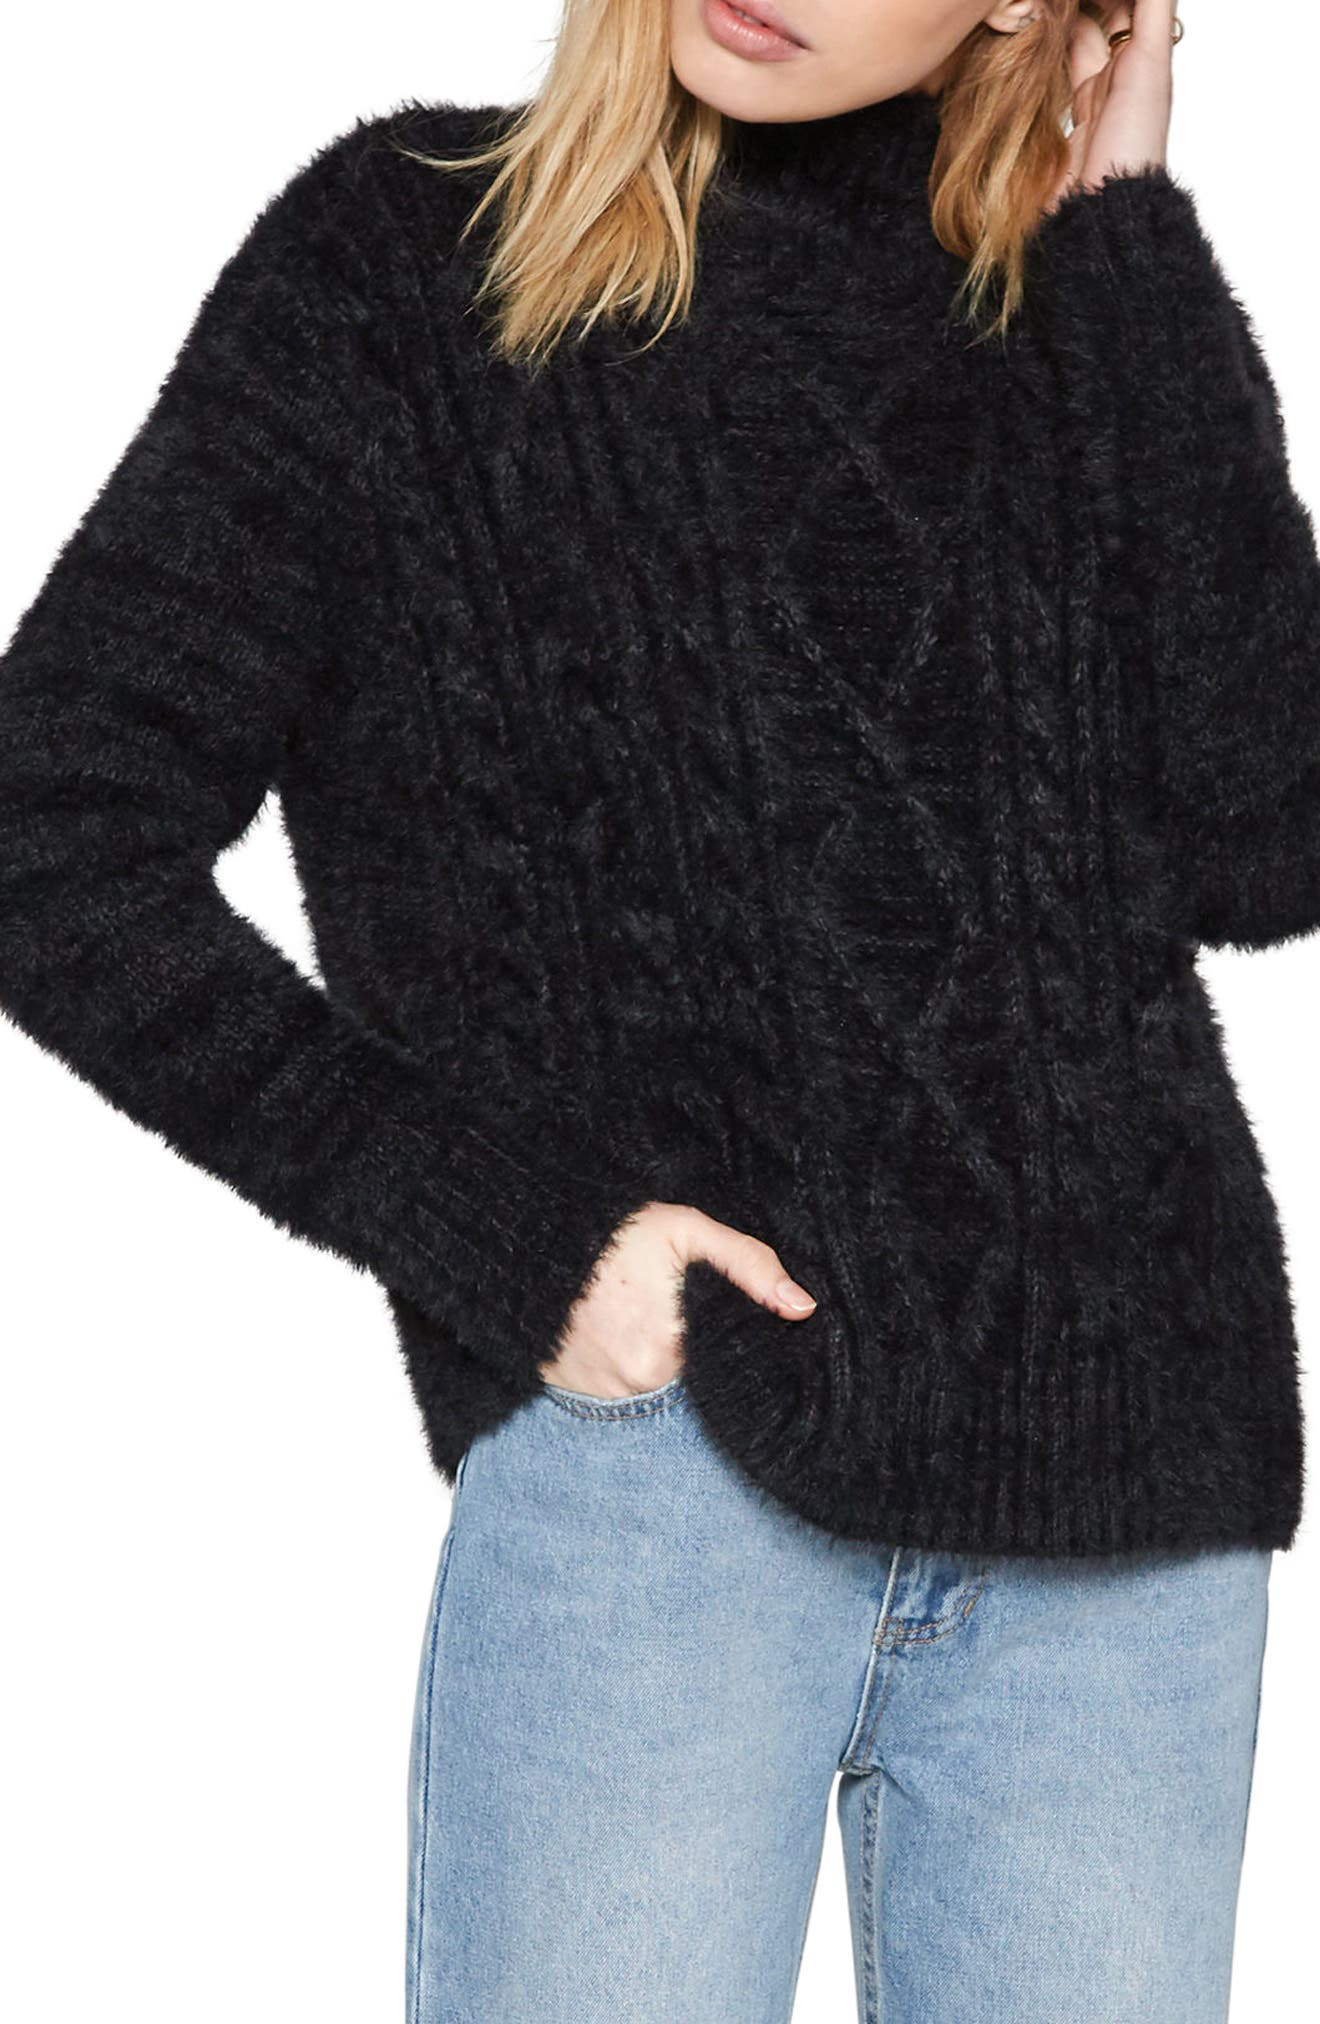 Cool Winds Cable Knit Sweater,                             Main thumbnail 1, color,                             Black